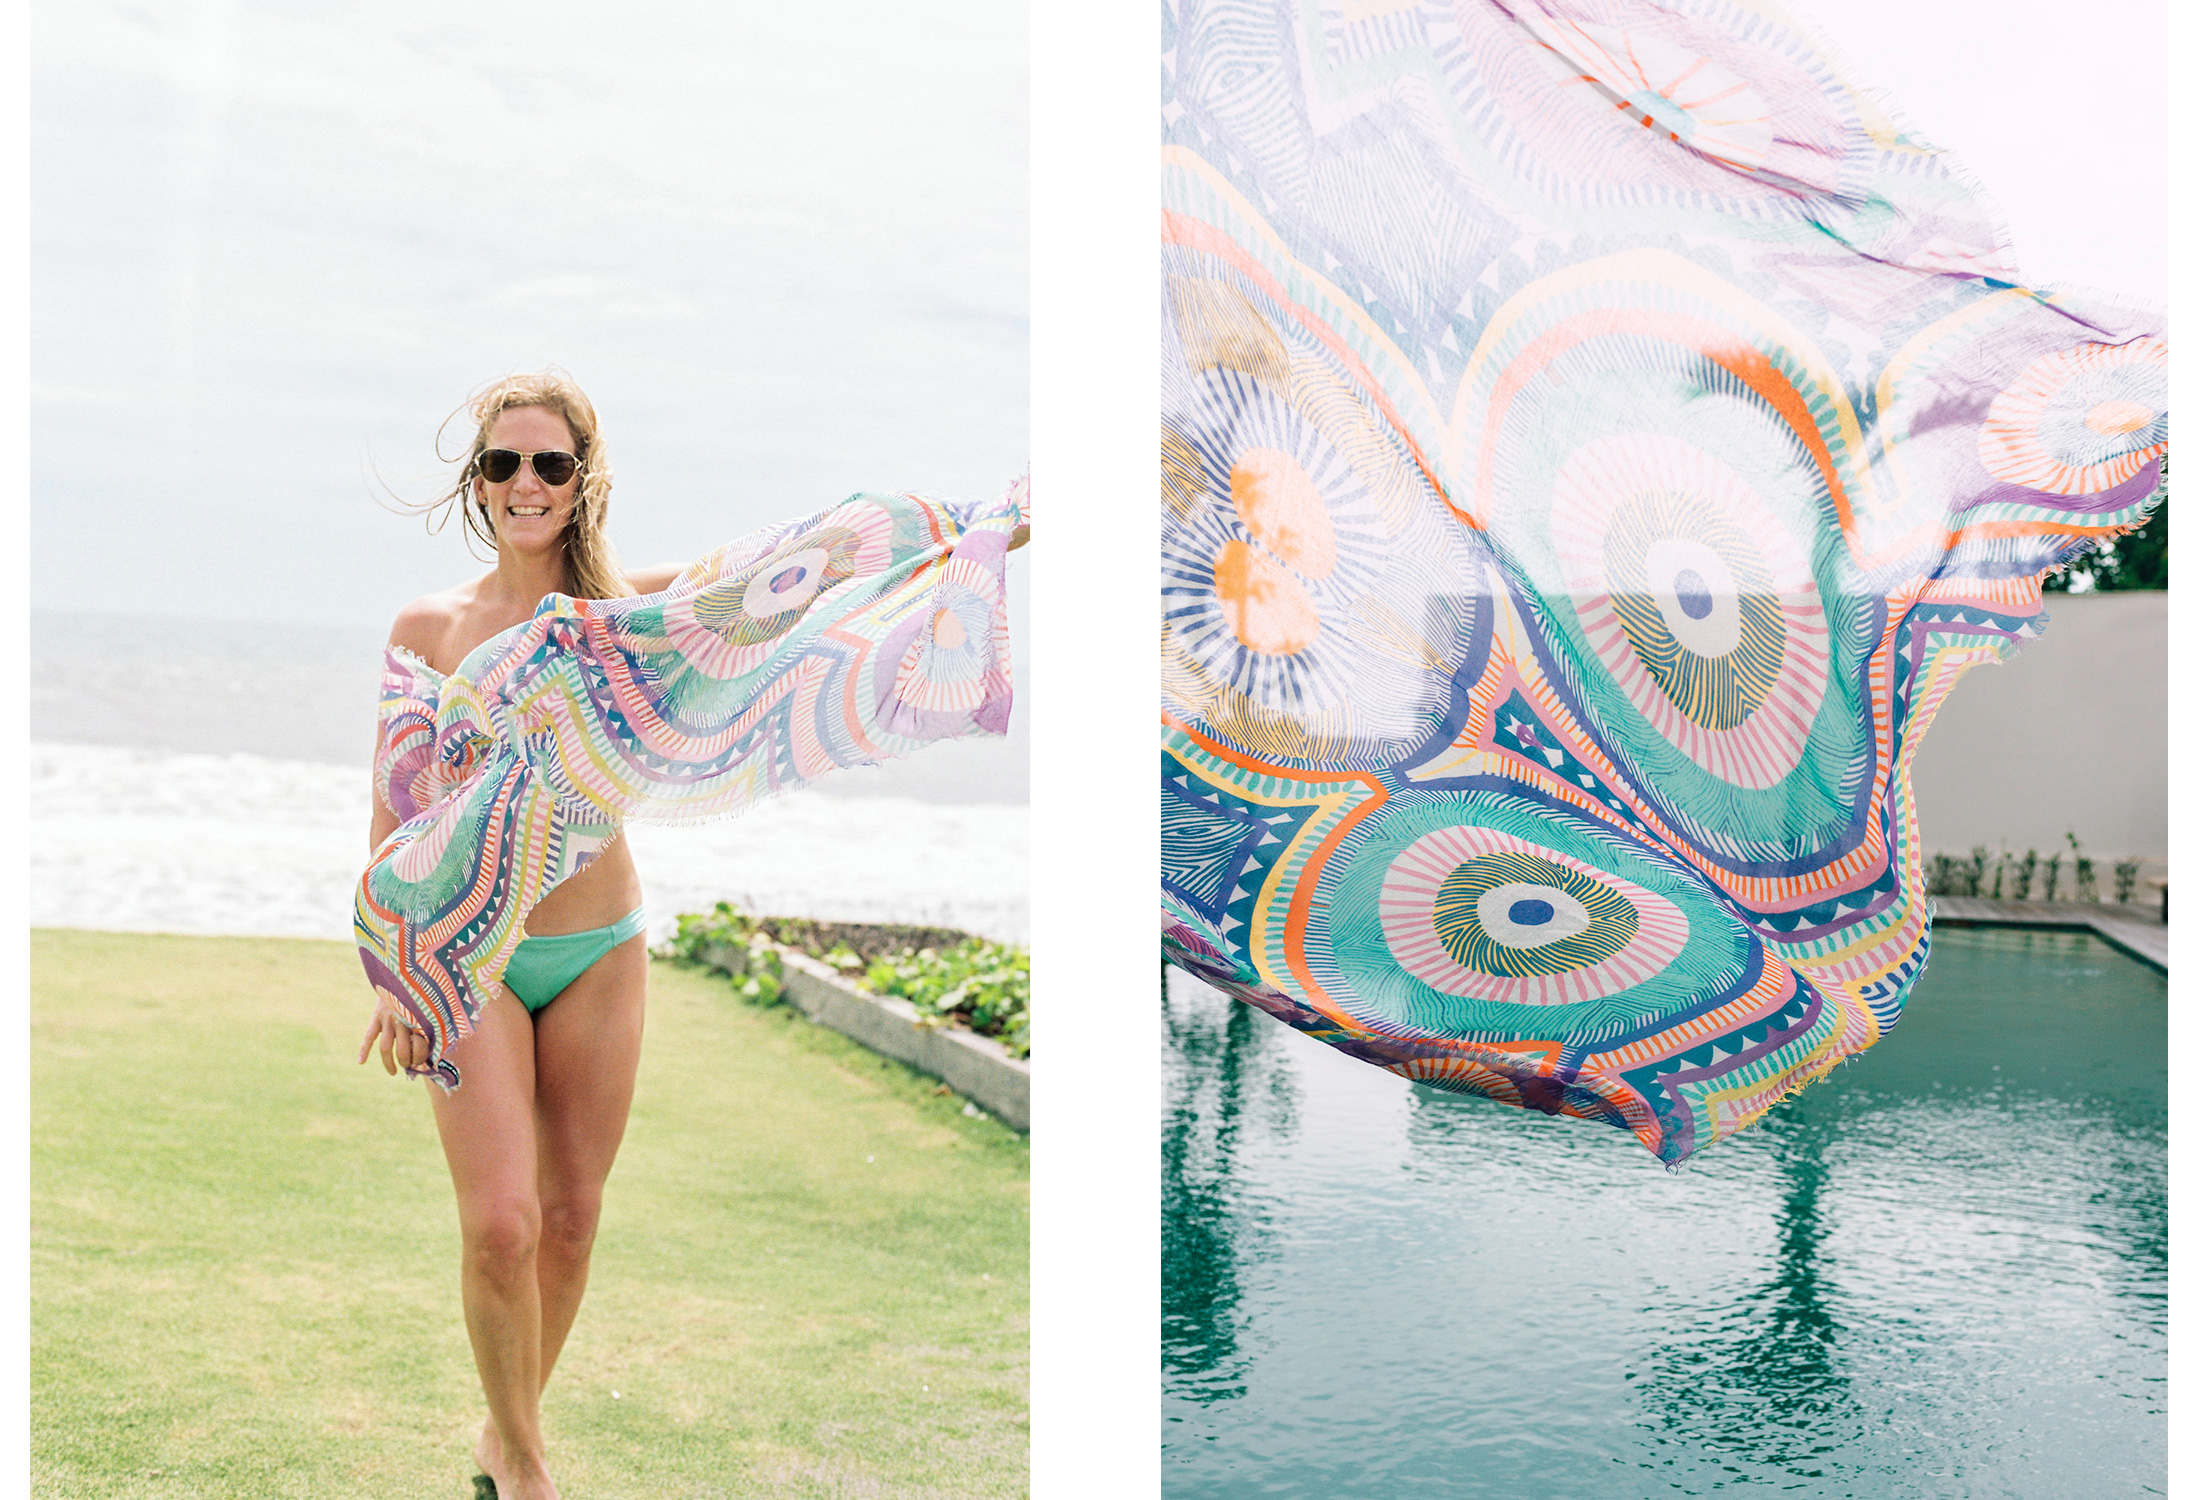 Esther uses our  Byzantium Voyeur scarf  as a beach cover up